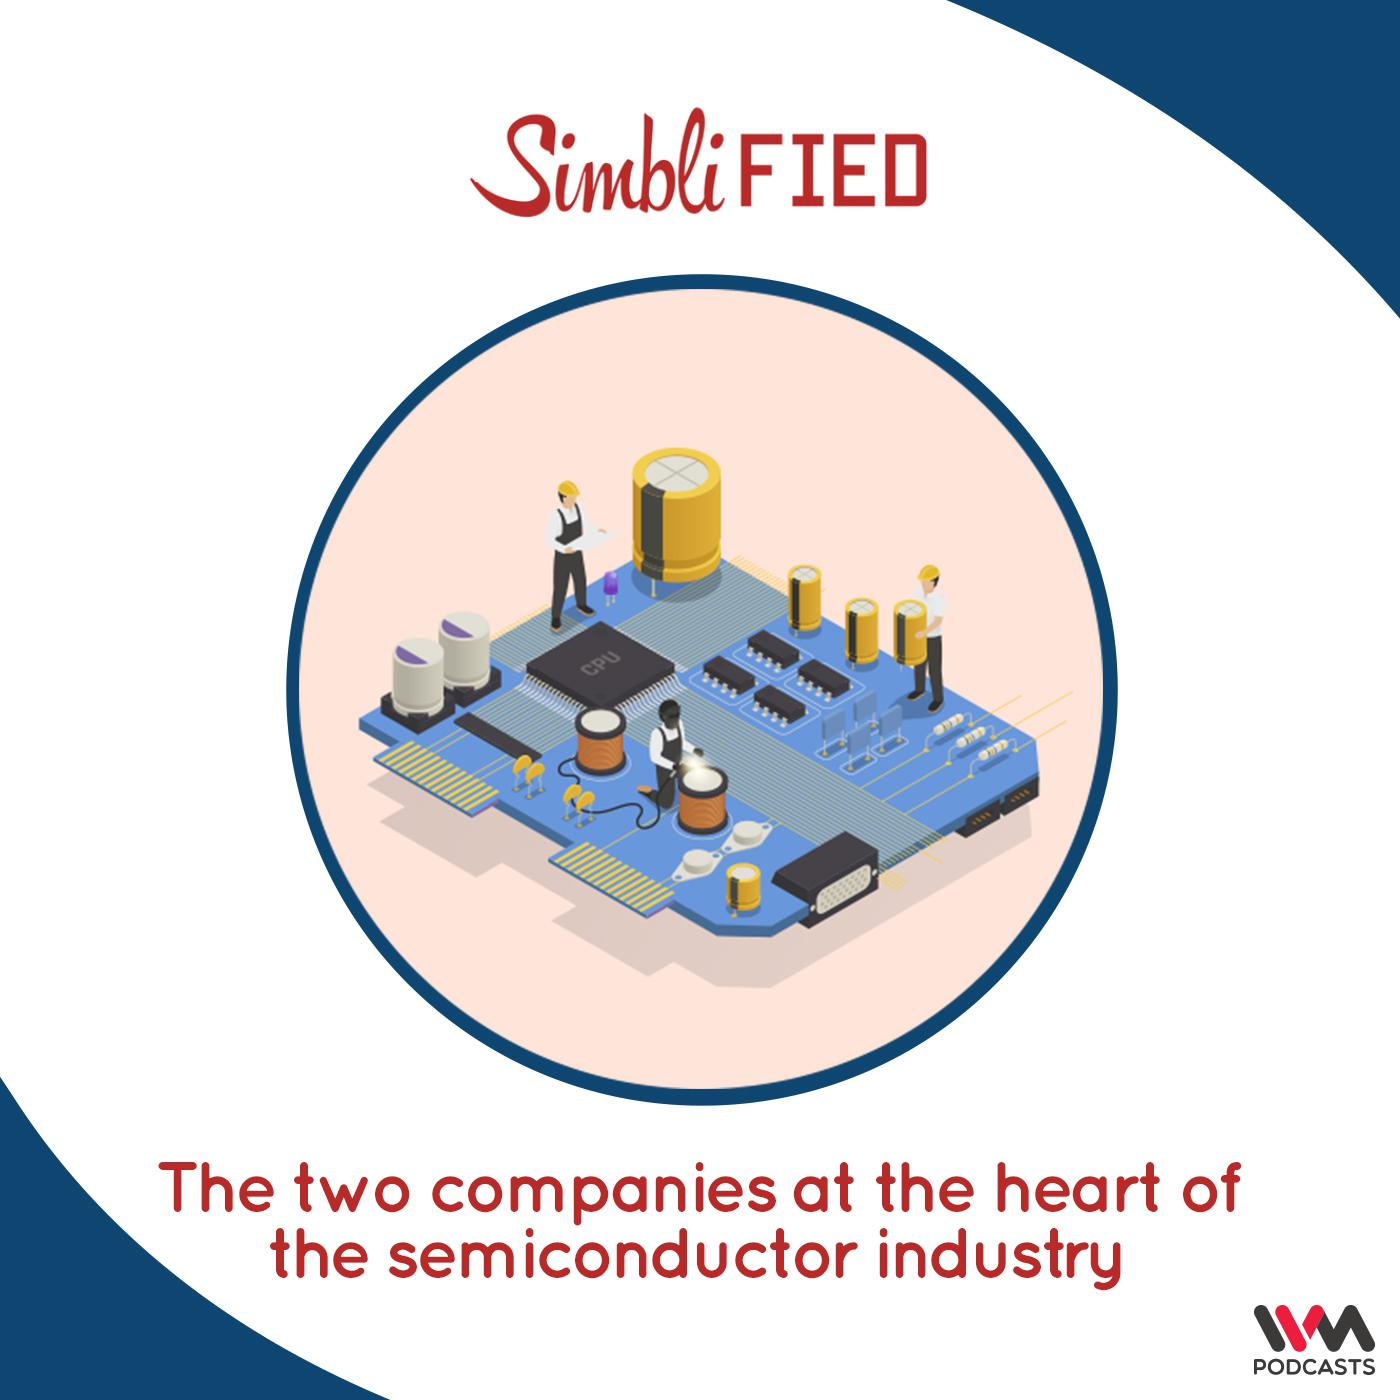 The two companies at the heart of the semiconductor industry